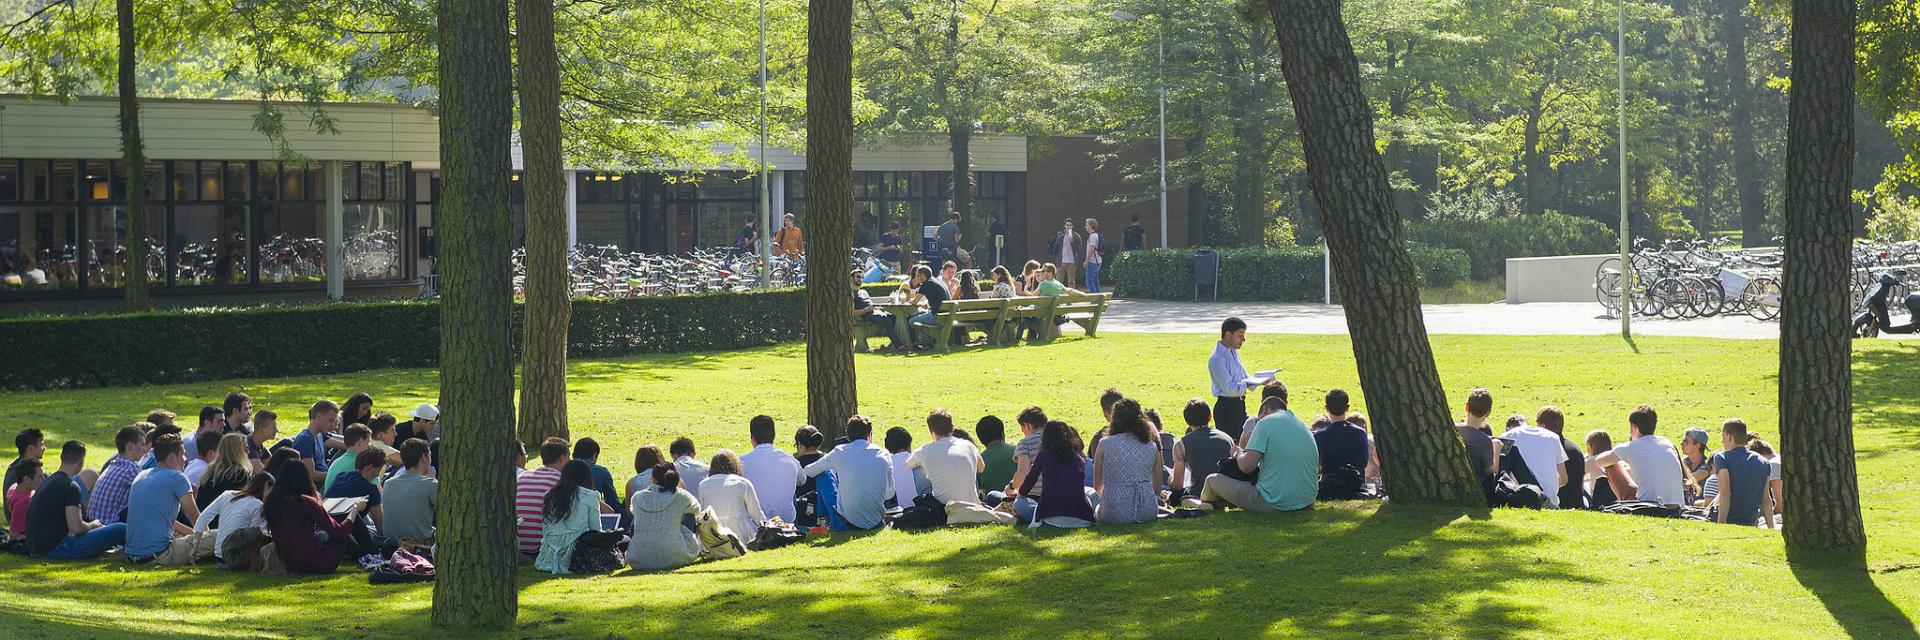 Students on campus enjoying the good weather